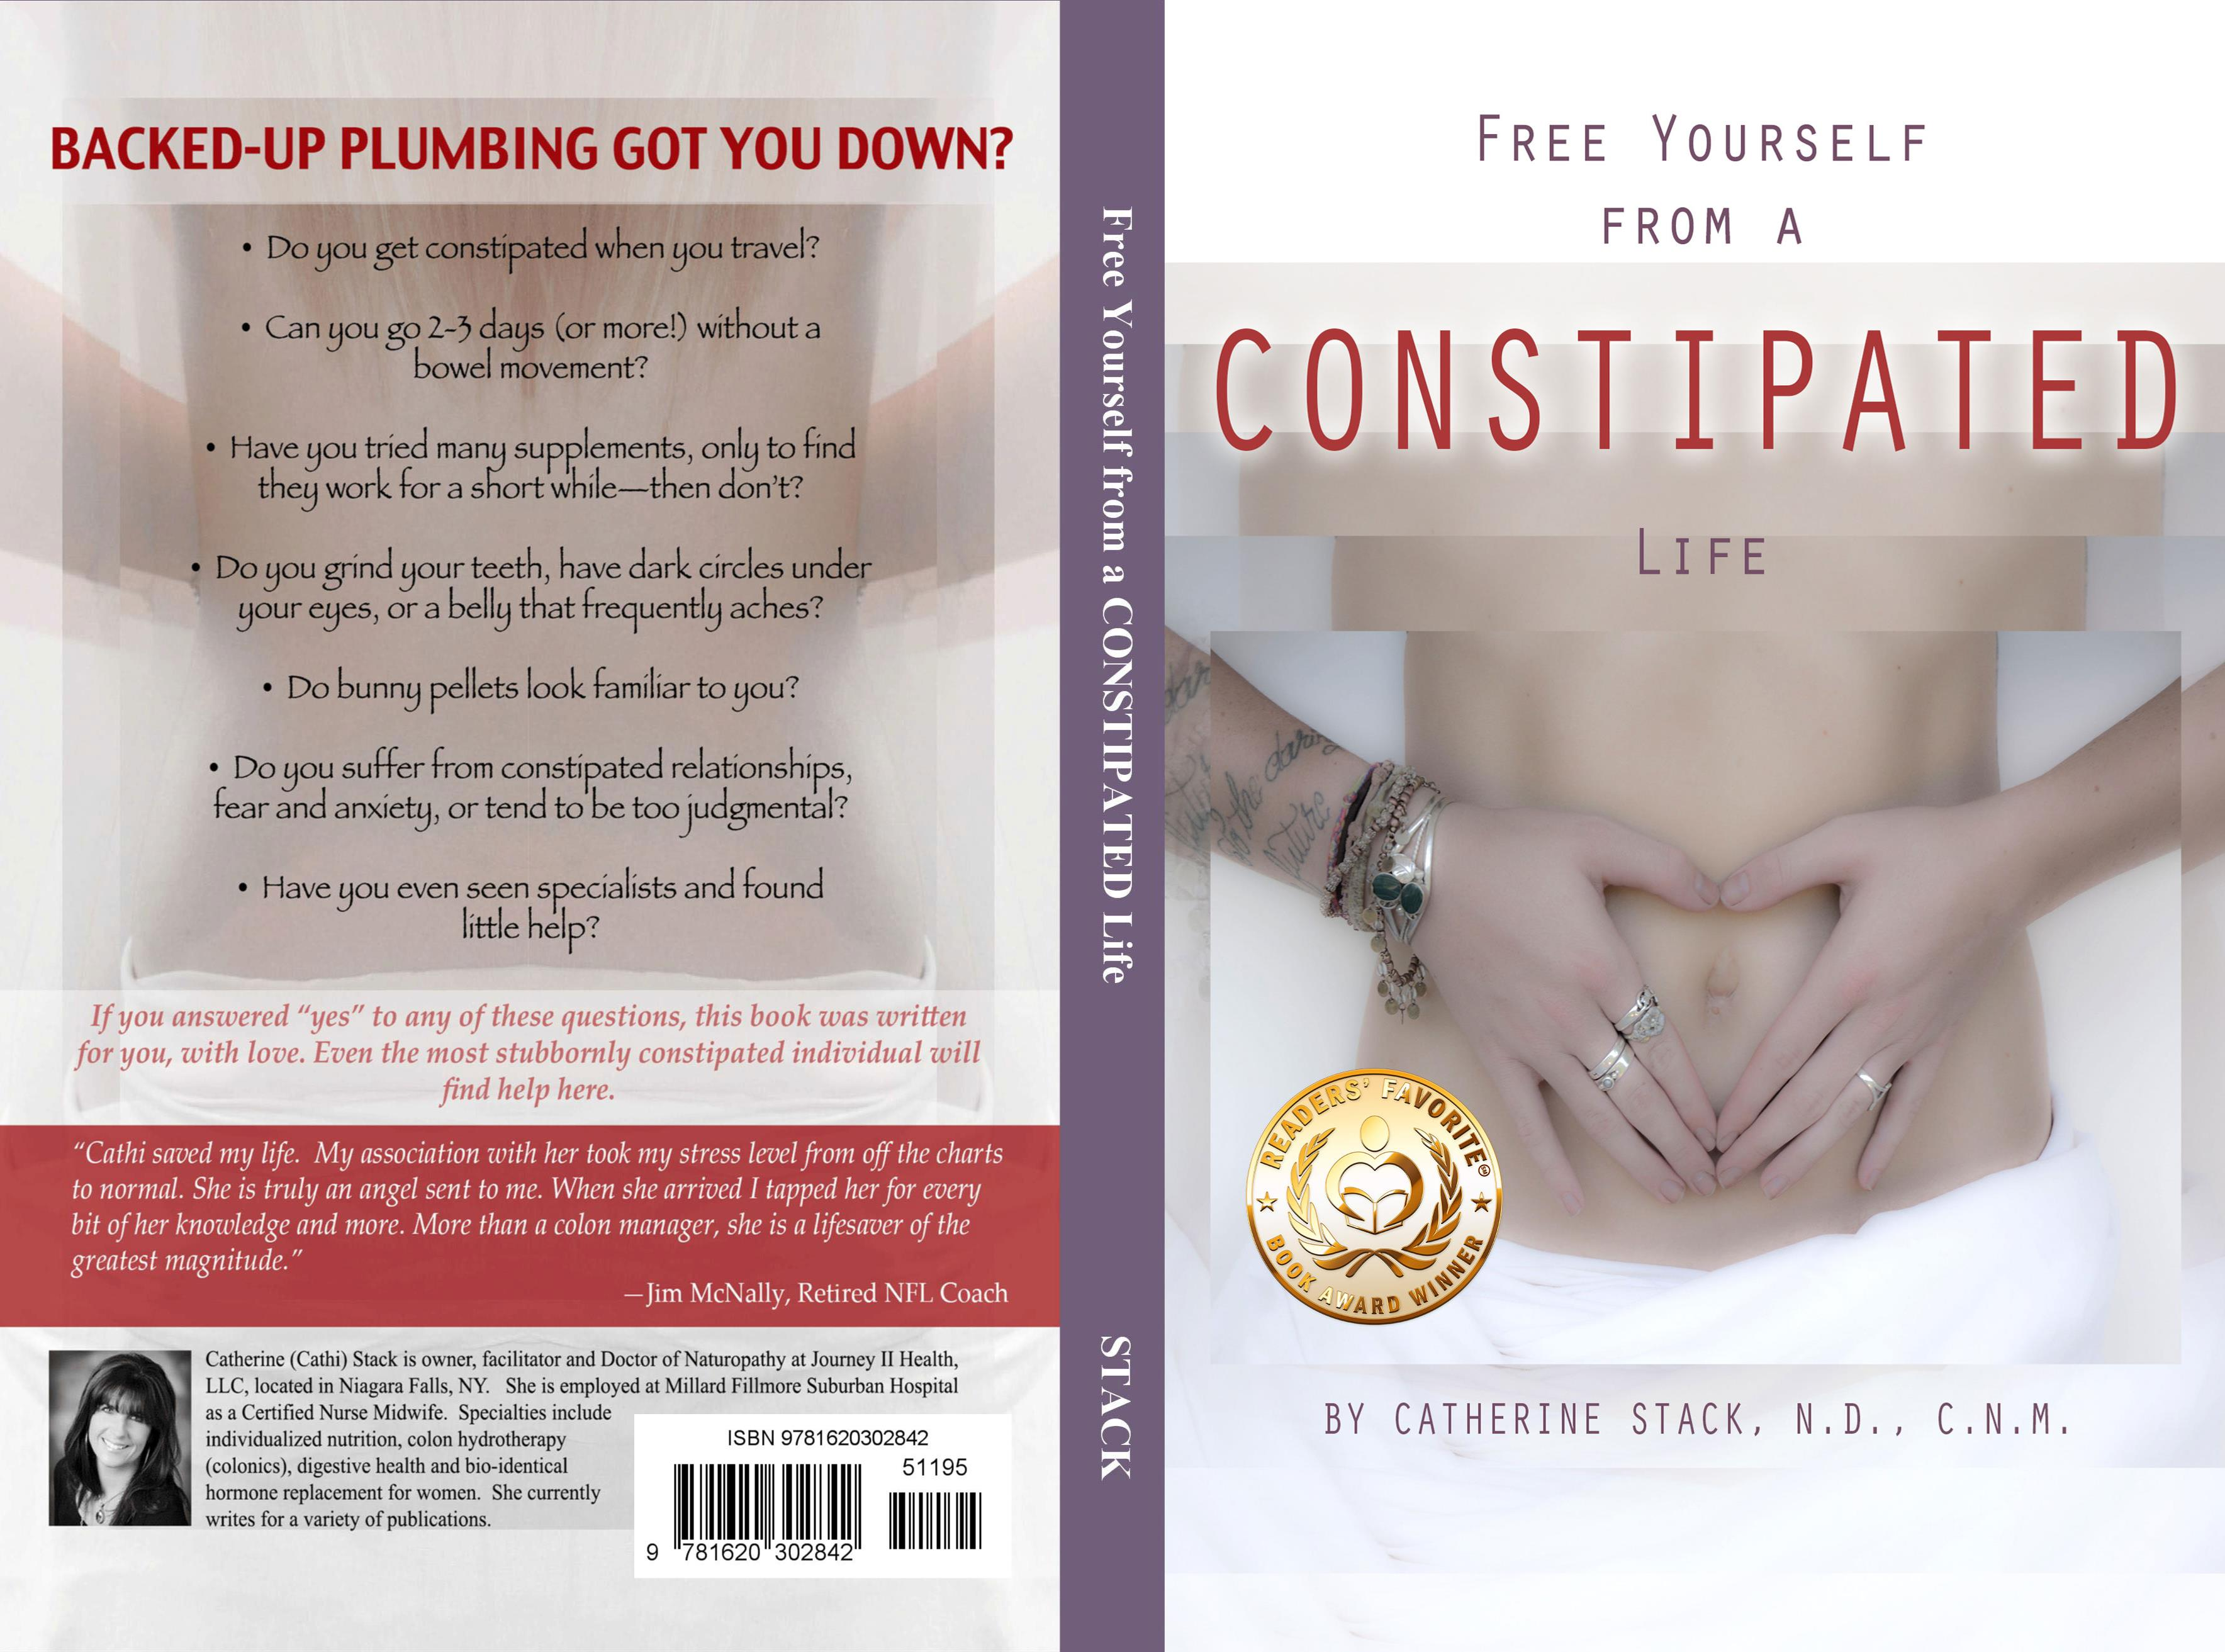 FREE YOURSELF FROM A CONSTIPATED LIFE cover image